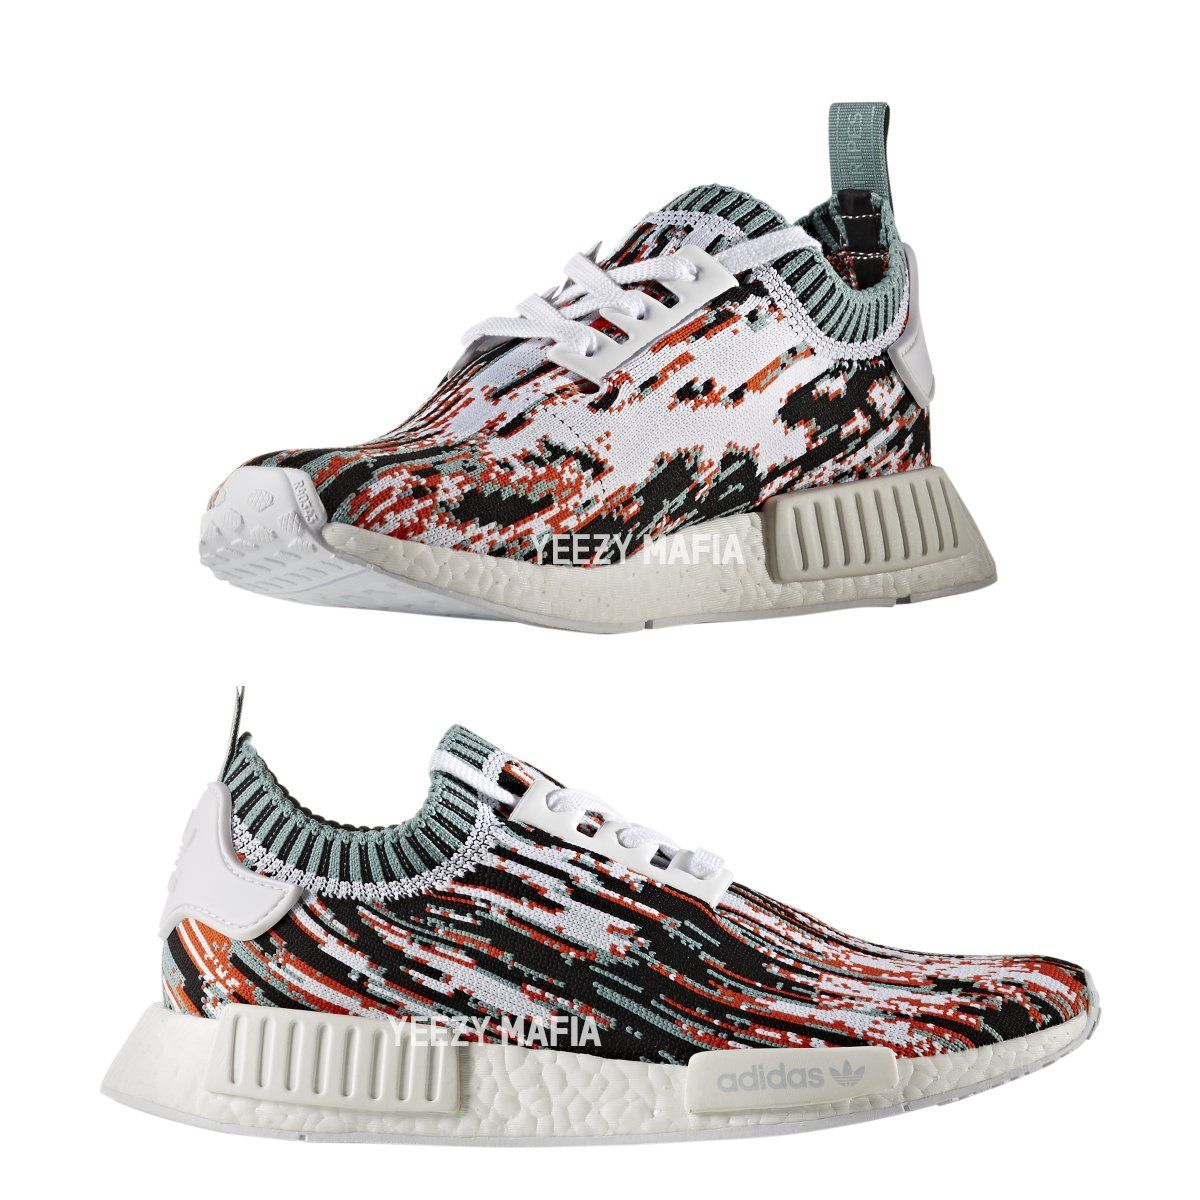 New NMD R1 PK Gucci glitch coming spring 2017